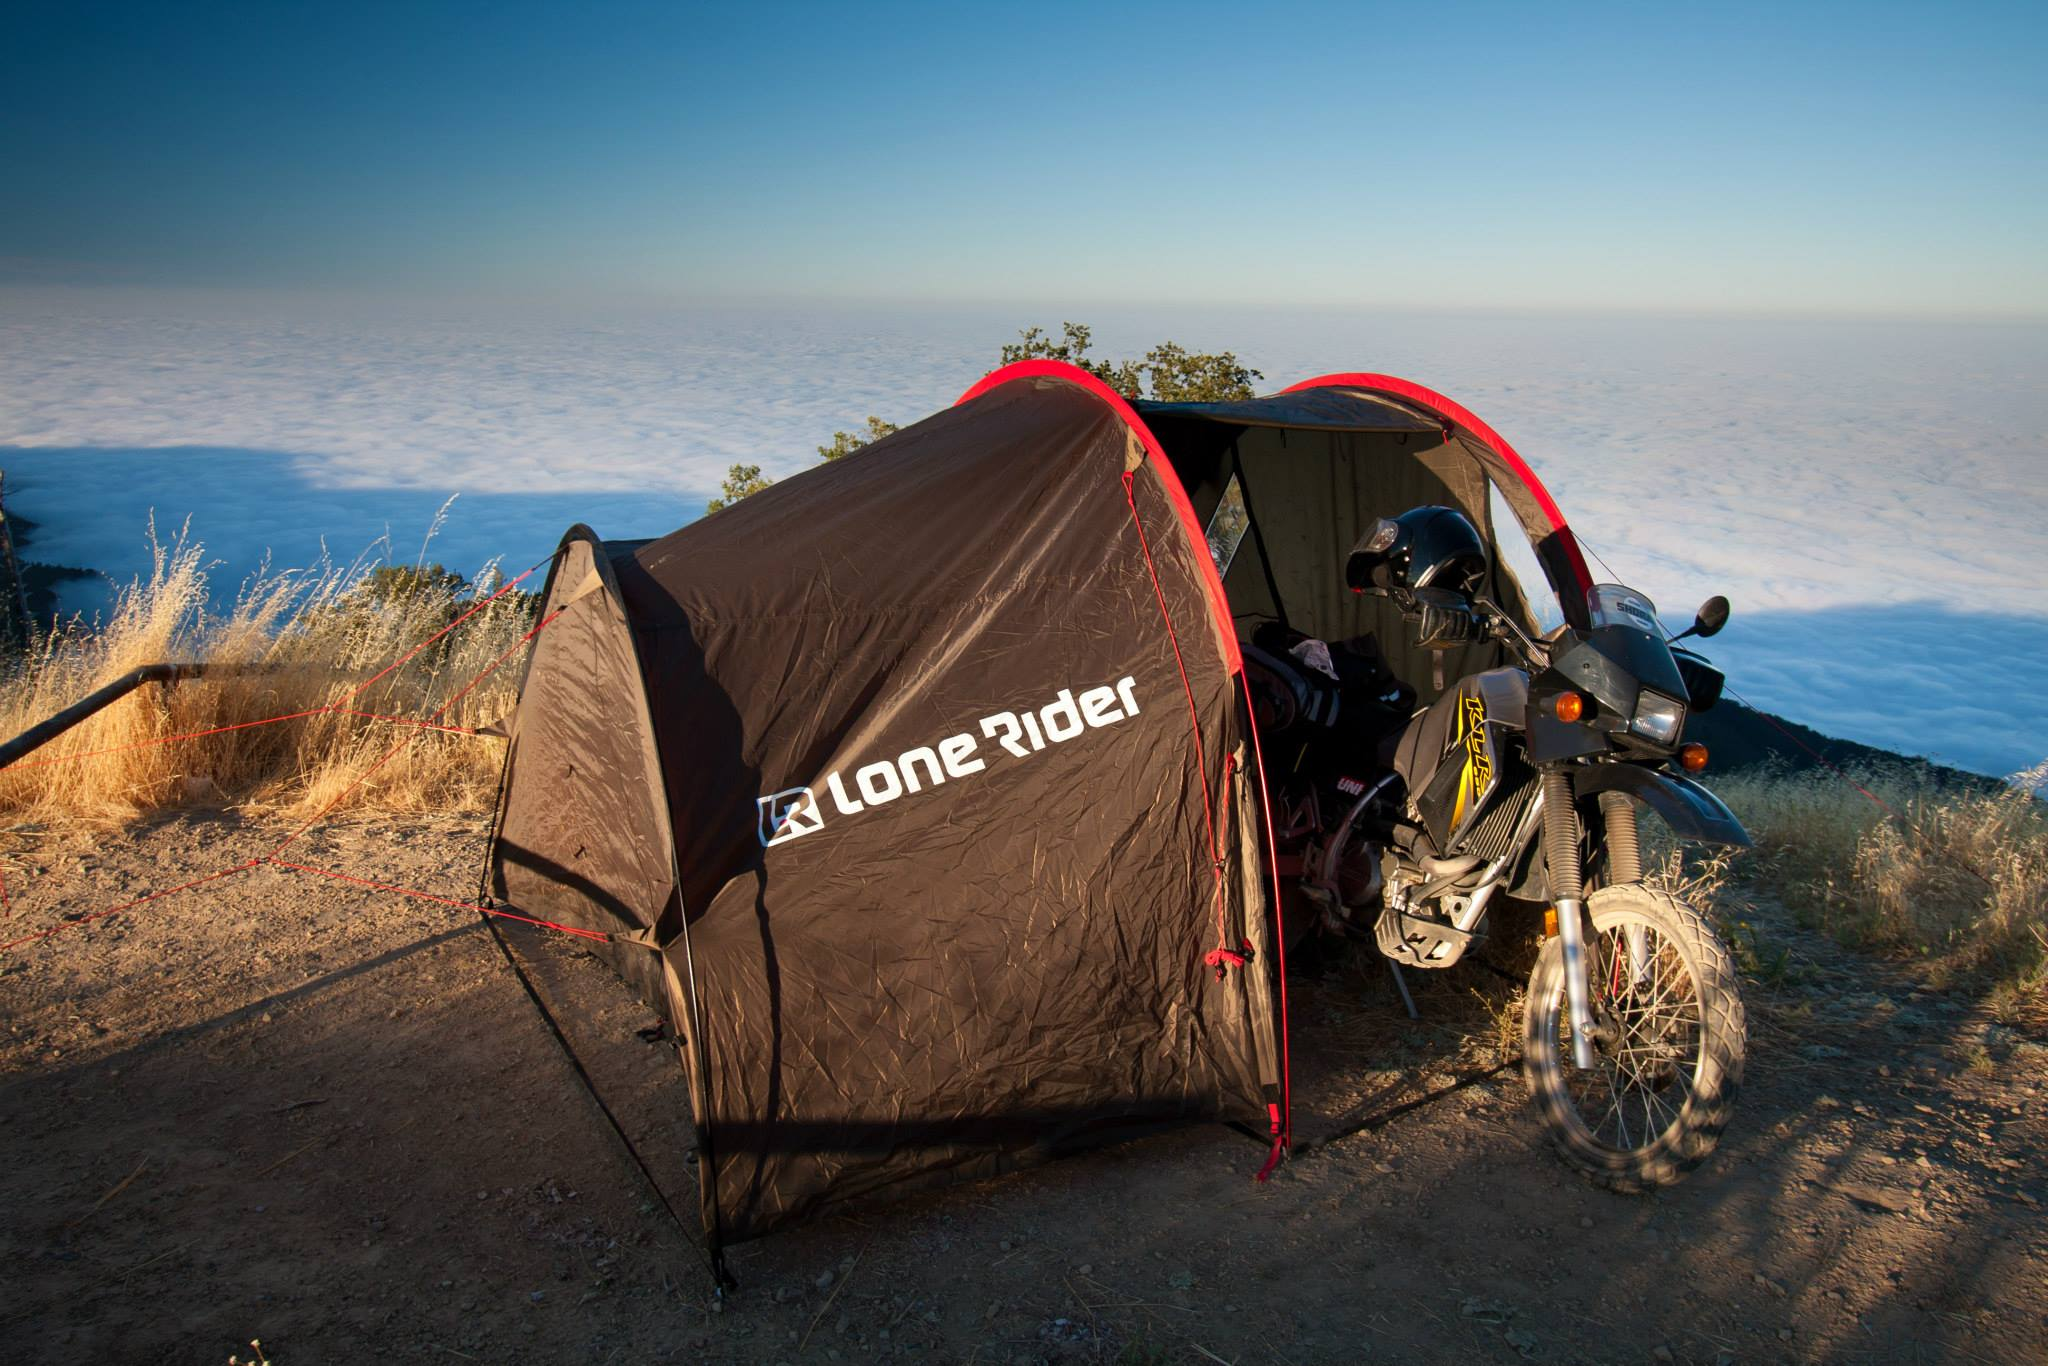 Motorcycle camping tips - photo by Lone Rider MotoTent v2 customer